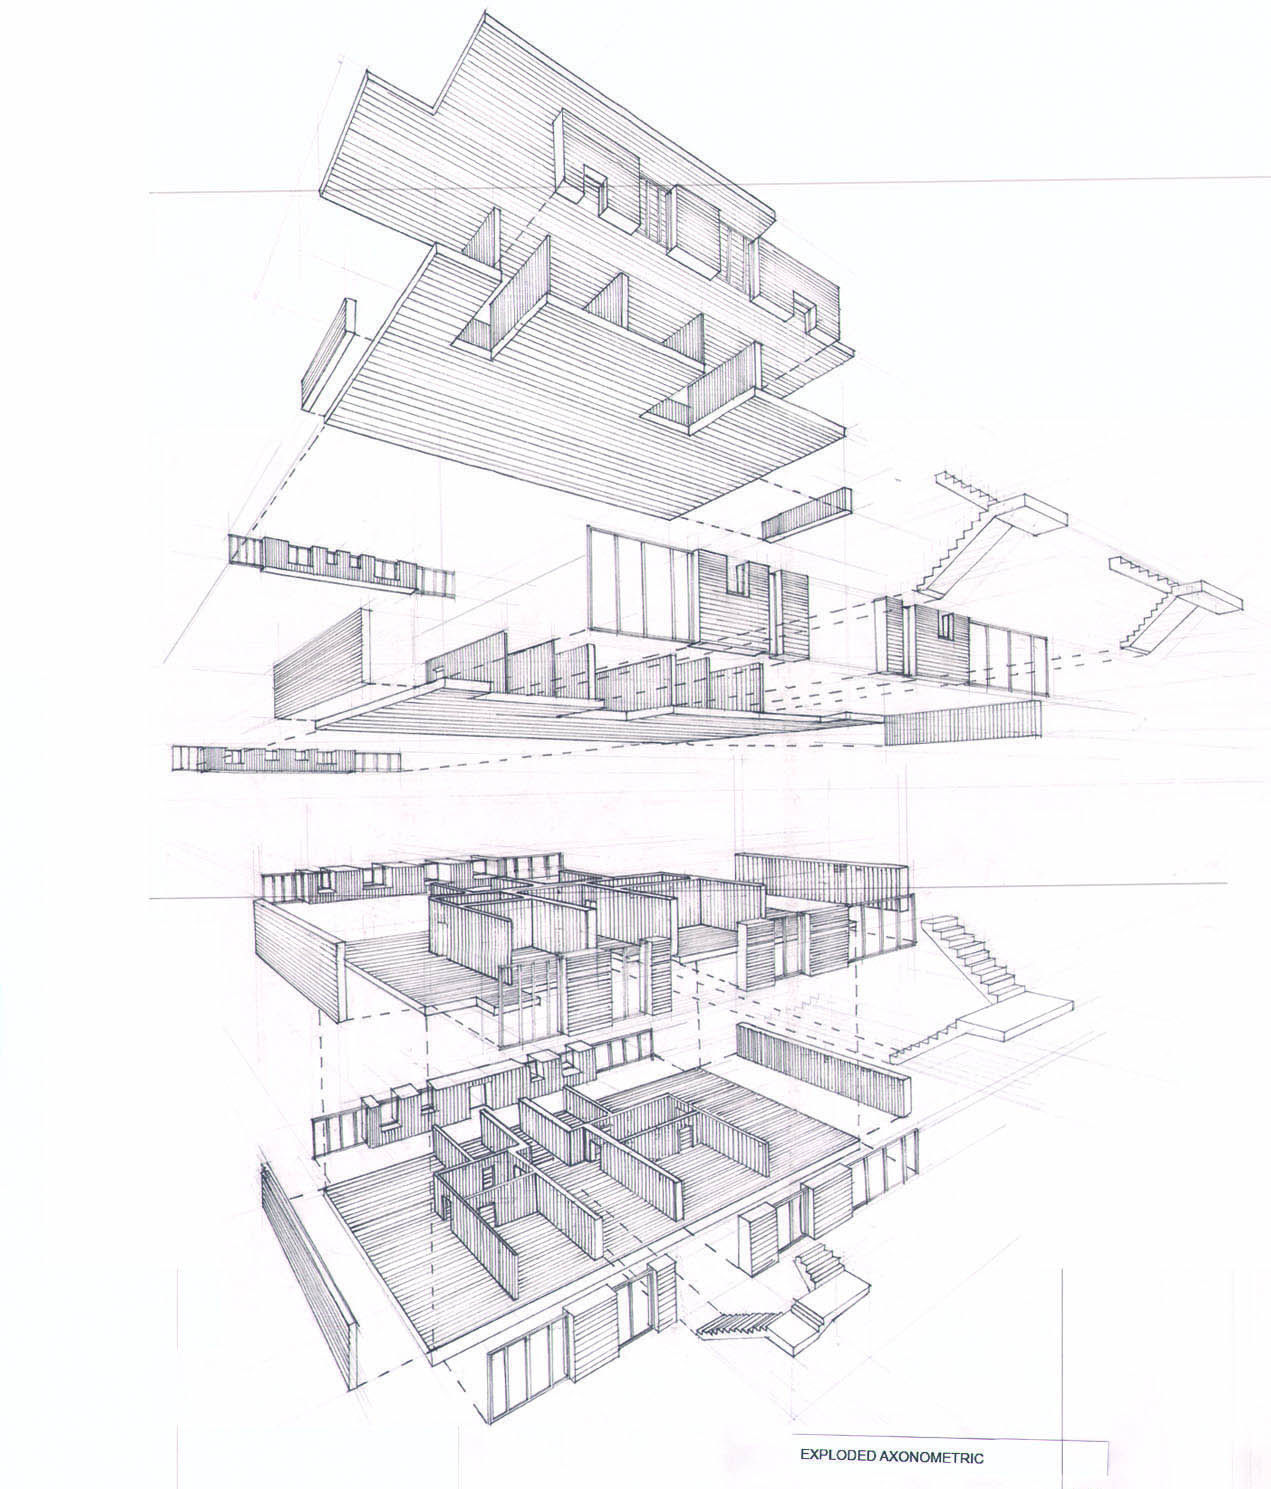 Exploded Axonometric Drawings Can Be Useful And Very Informative But Are Not As Clear To